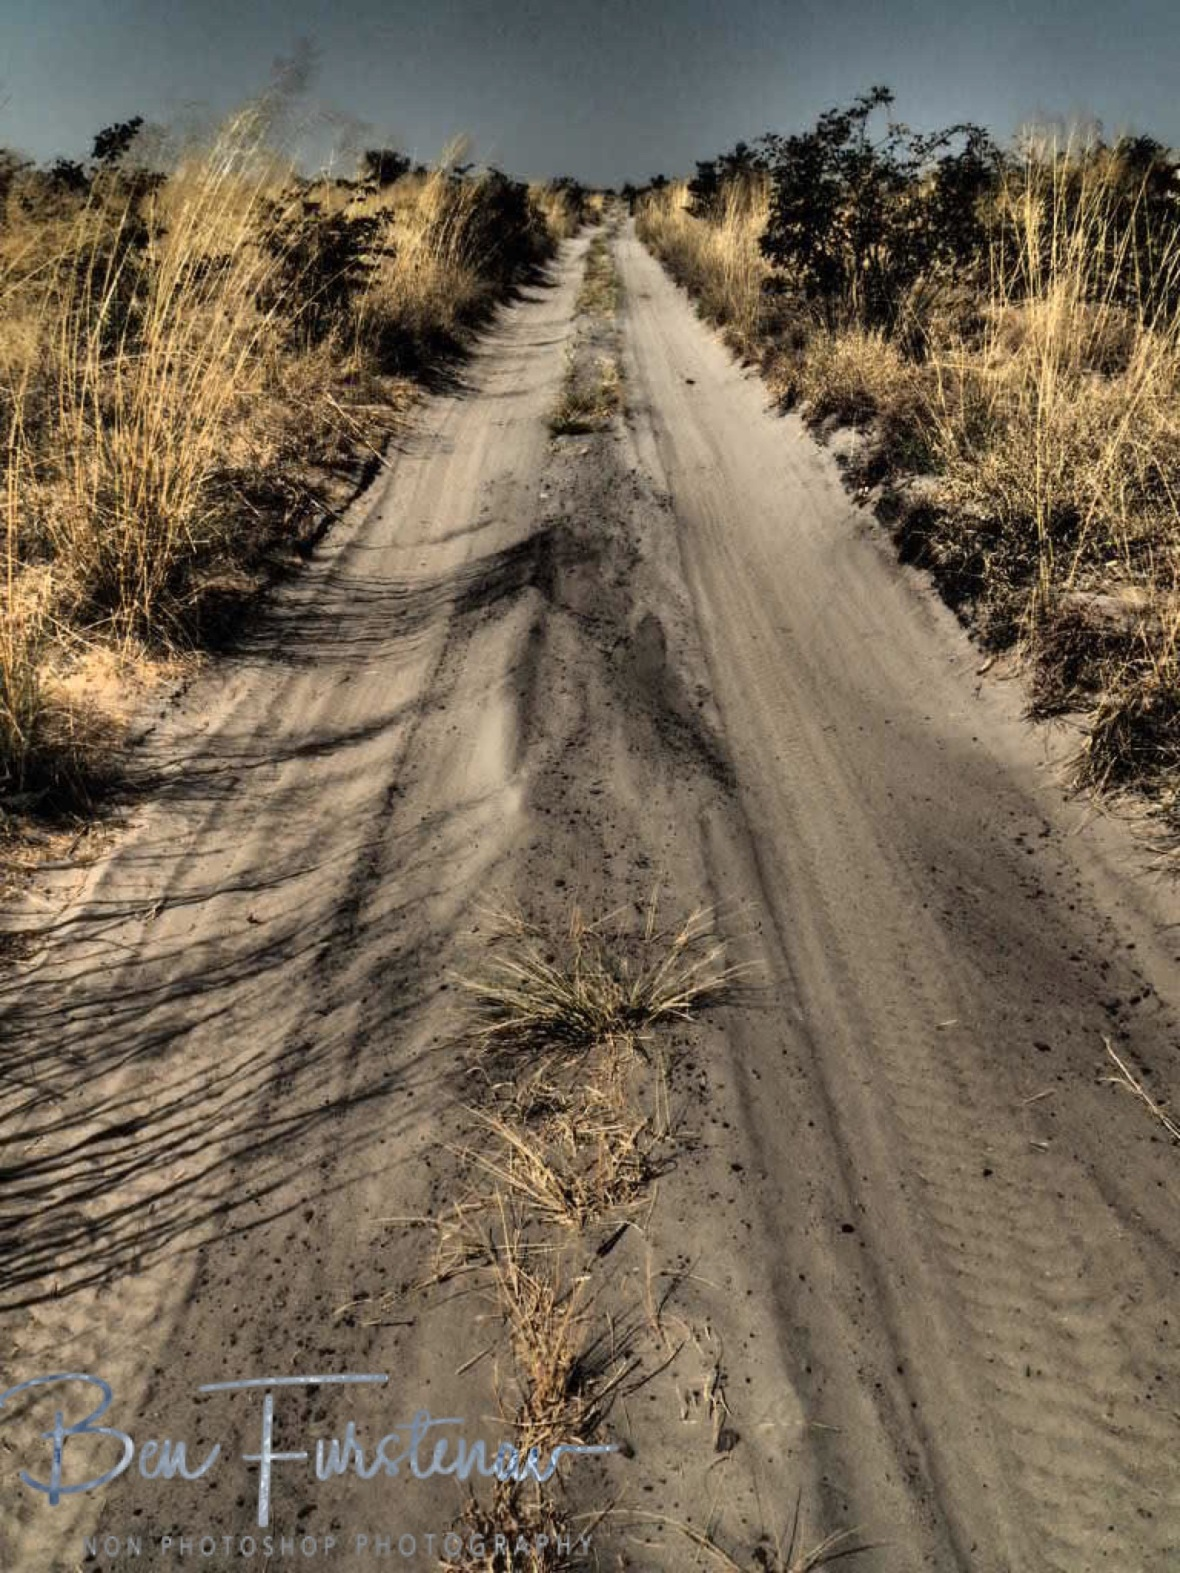 The long and sandy road, Moremi National Park, Okavango Delta, Botswana